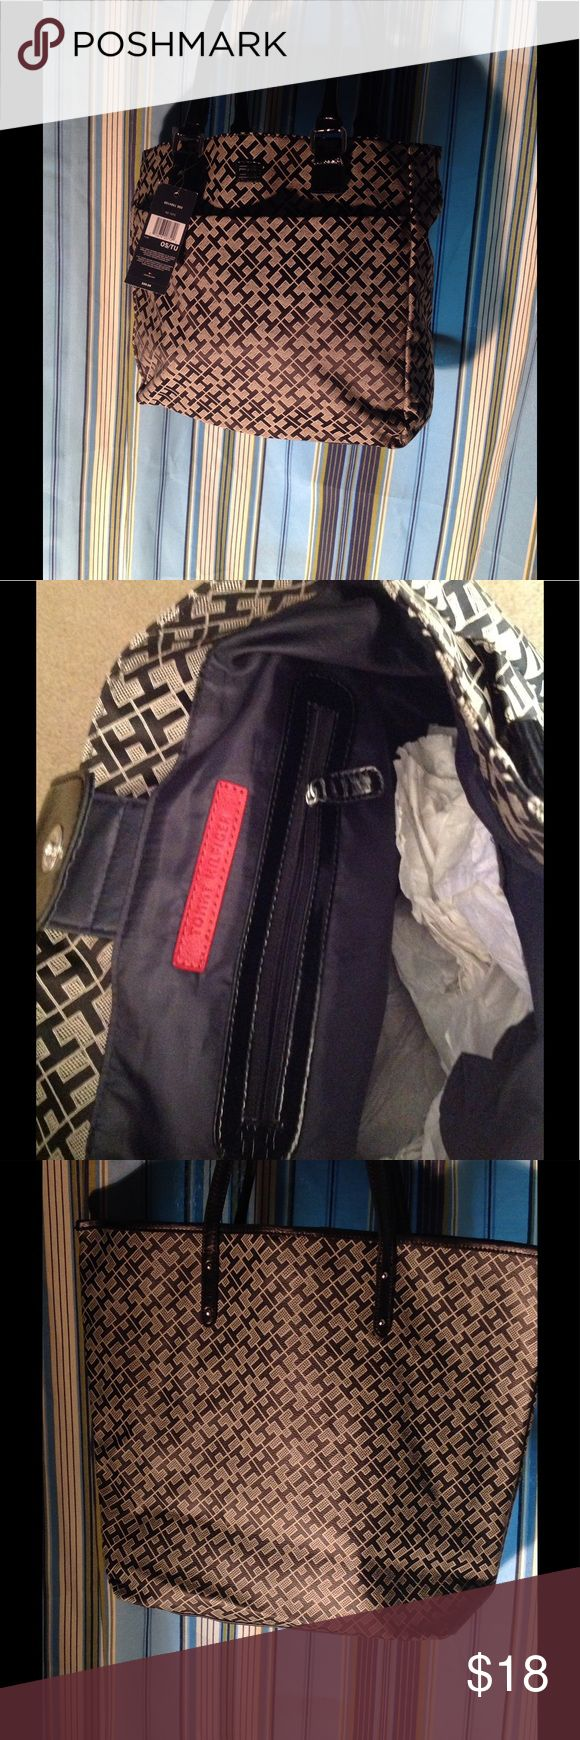 Tommy Hilfiger totes bag Tommy Hilfiger black and cream totes bags brand new tag still on Tommy Hilfiger Bags Totes